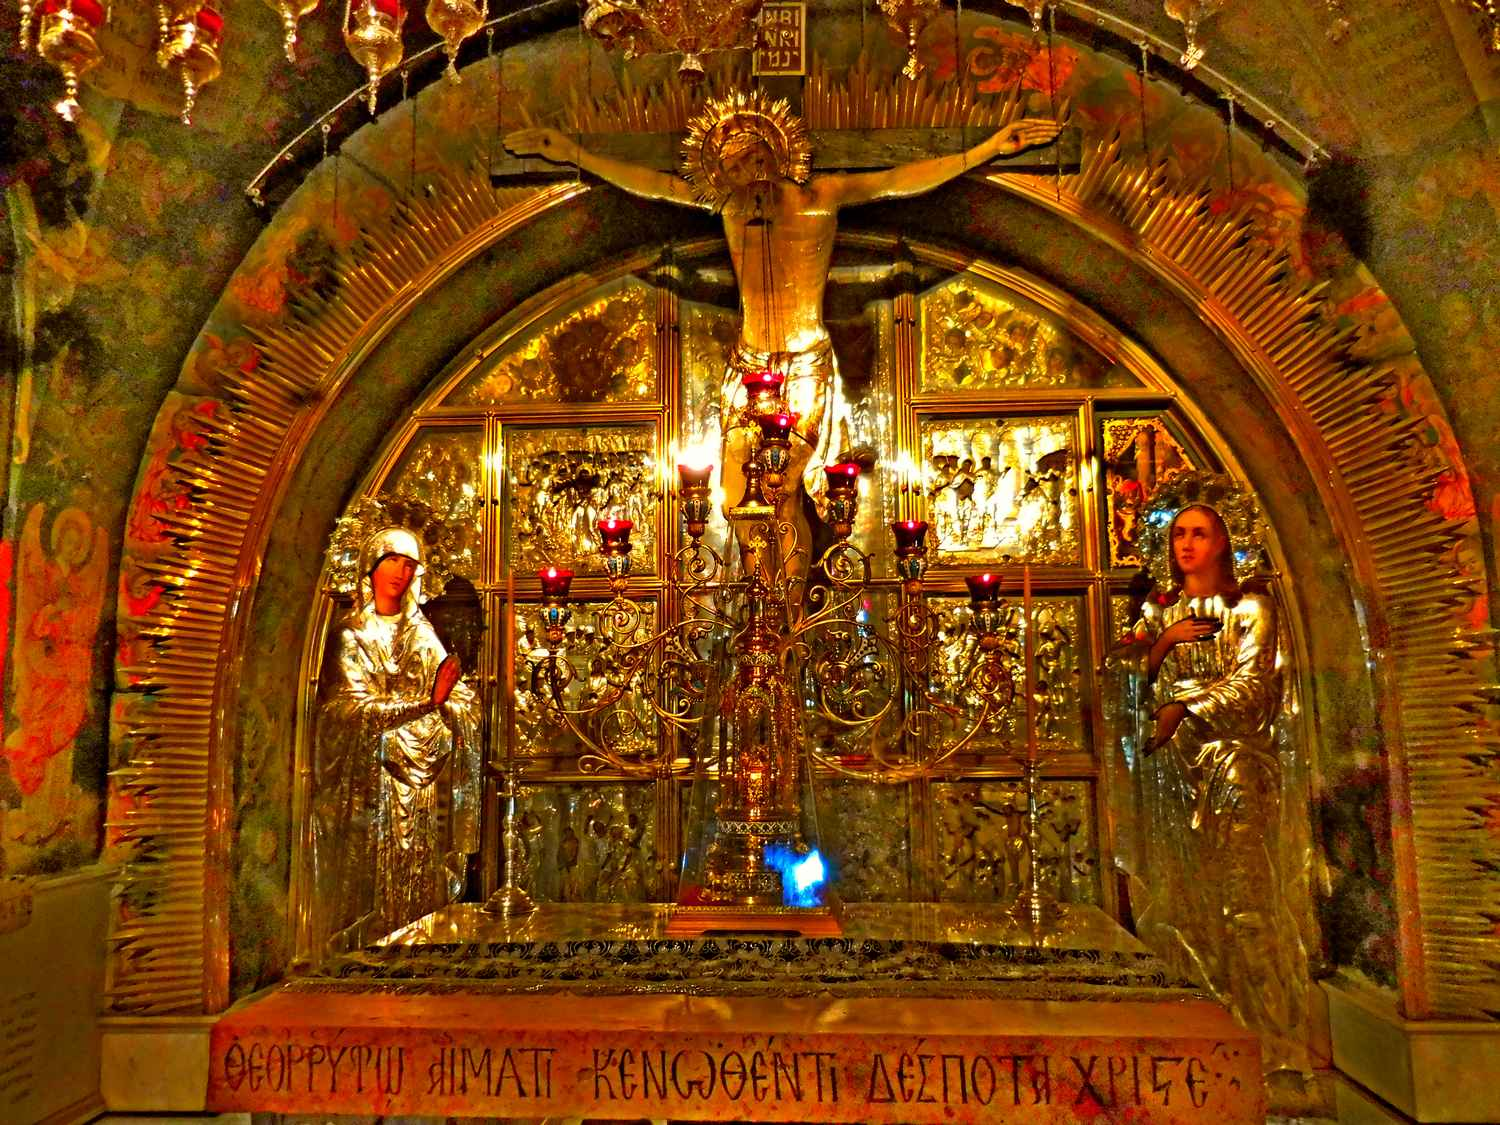 History of Jerusalem, old city, church of the holy sepulchre, altar of crucifixion, golgotha